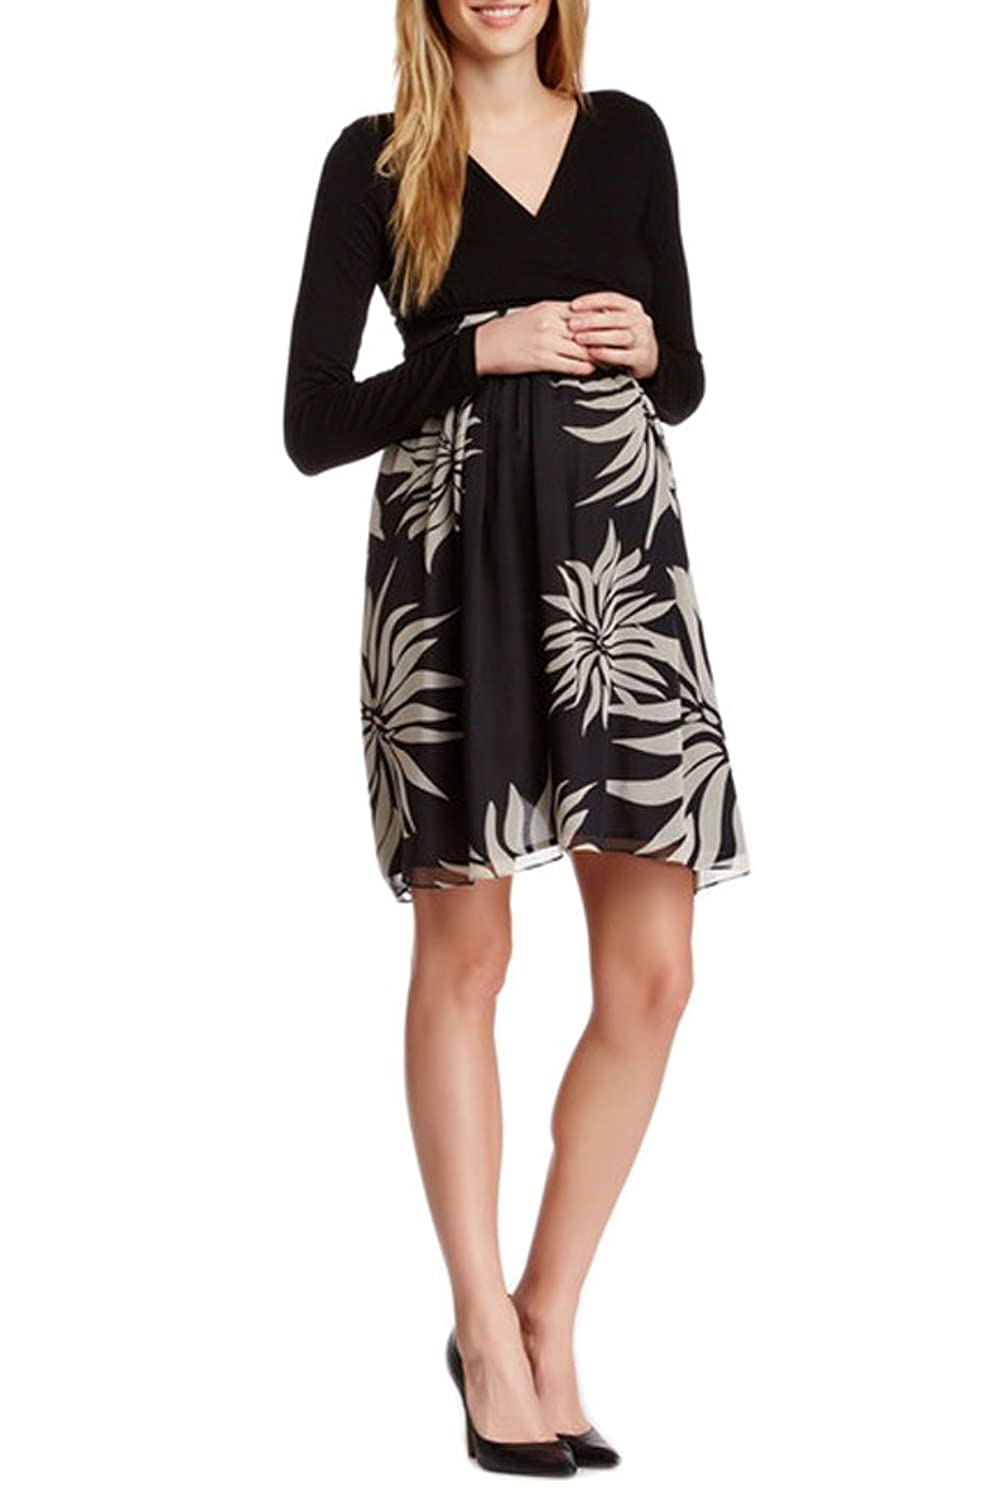 Olian maternity womens floral print kylie surplice neck dress olian maternity womens floral print kylie surplice neck dress small black at amazon womens clothing store ombrellifo Choice Image